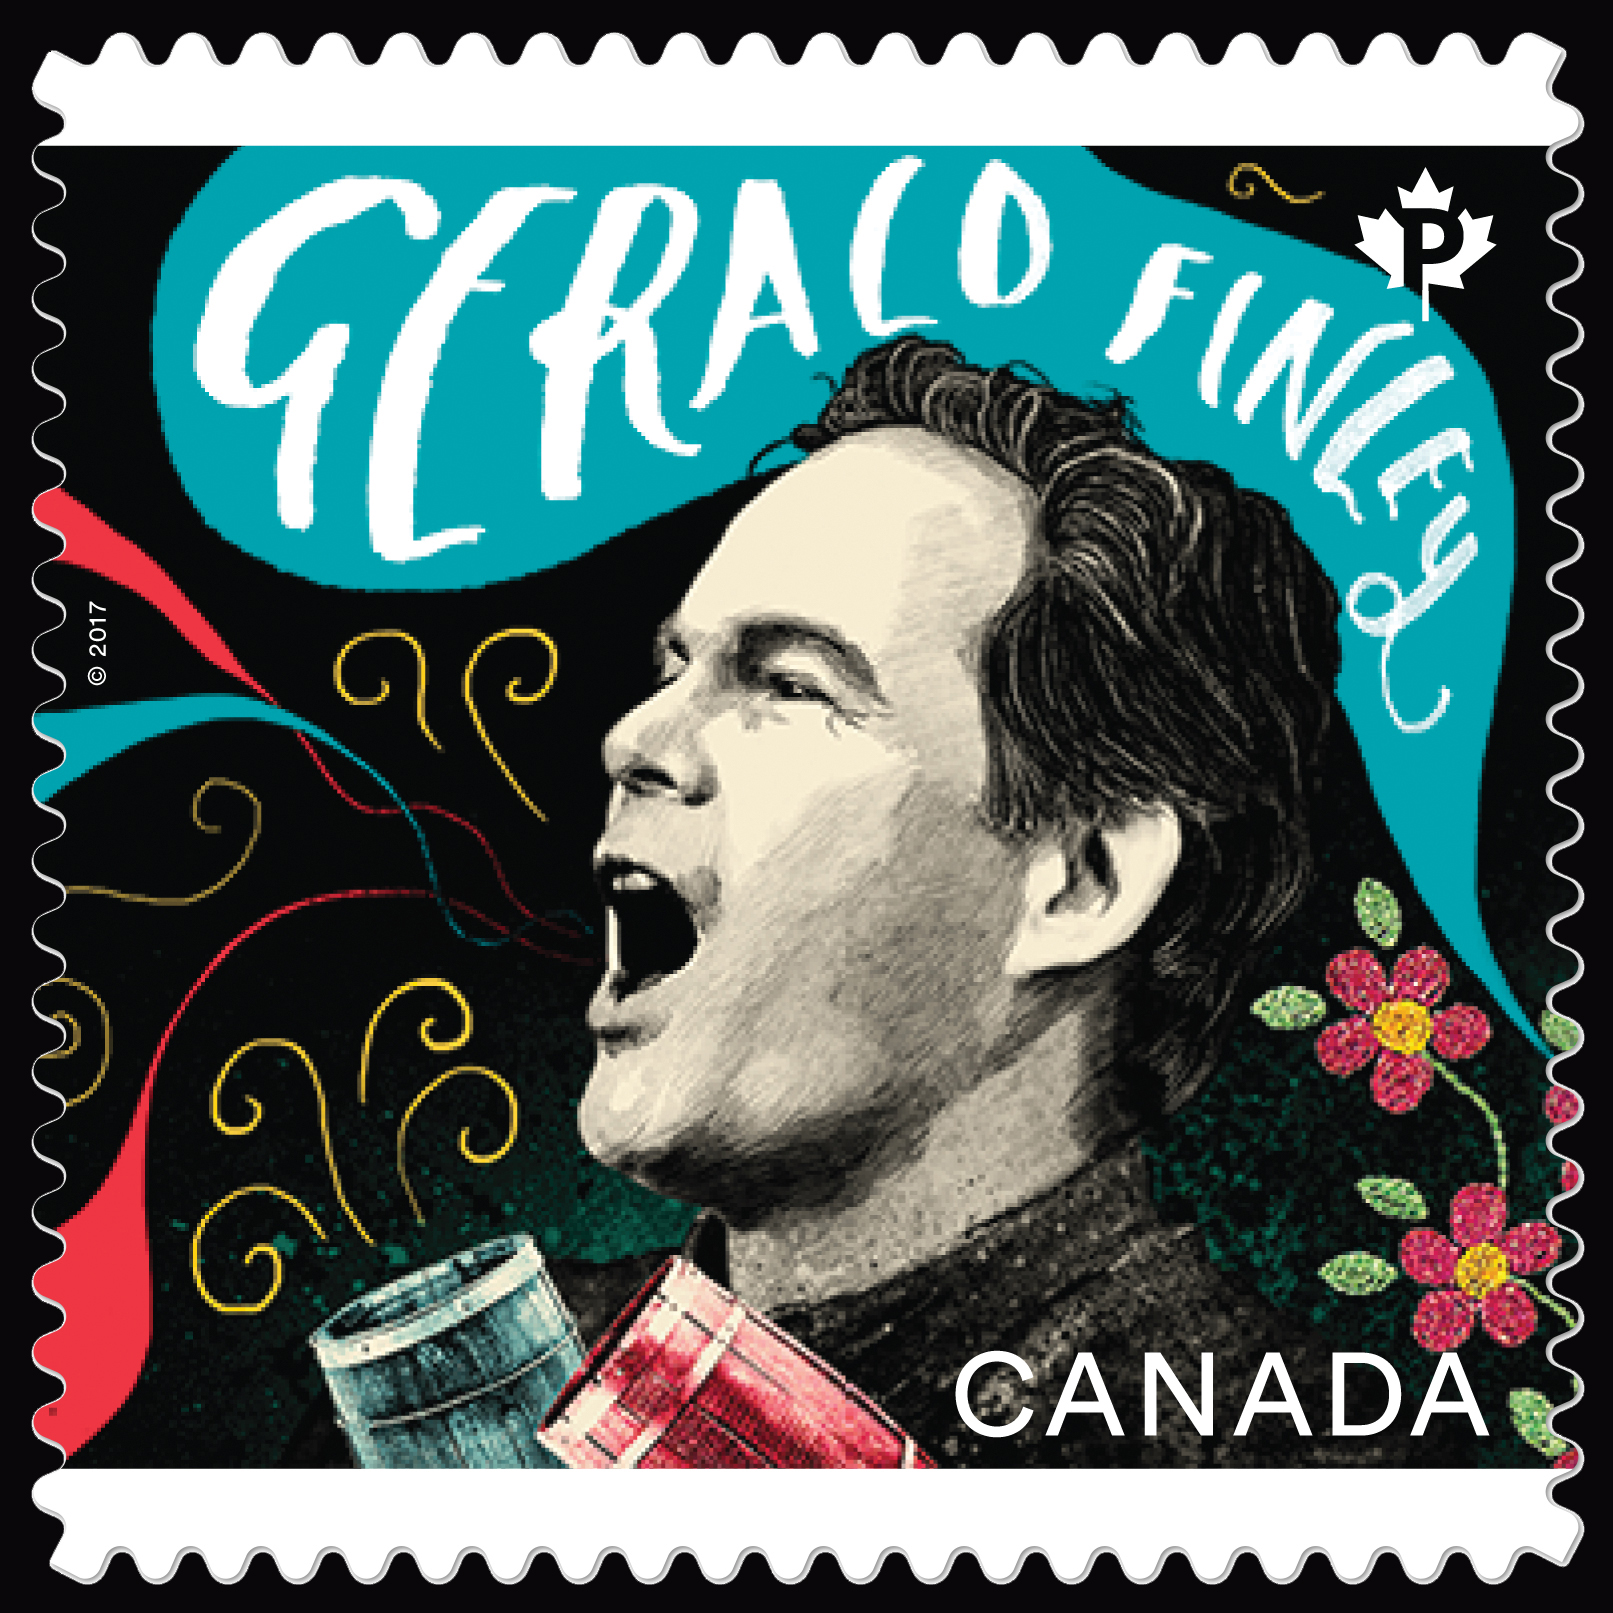 Bass-baritone Gerald Finley - Canadian Opera Canada Postage Stamp | Canadian Opera